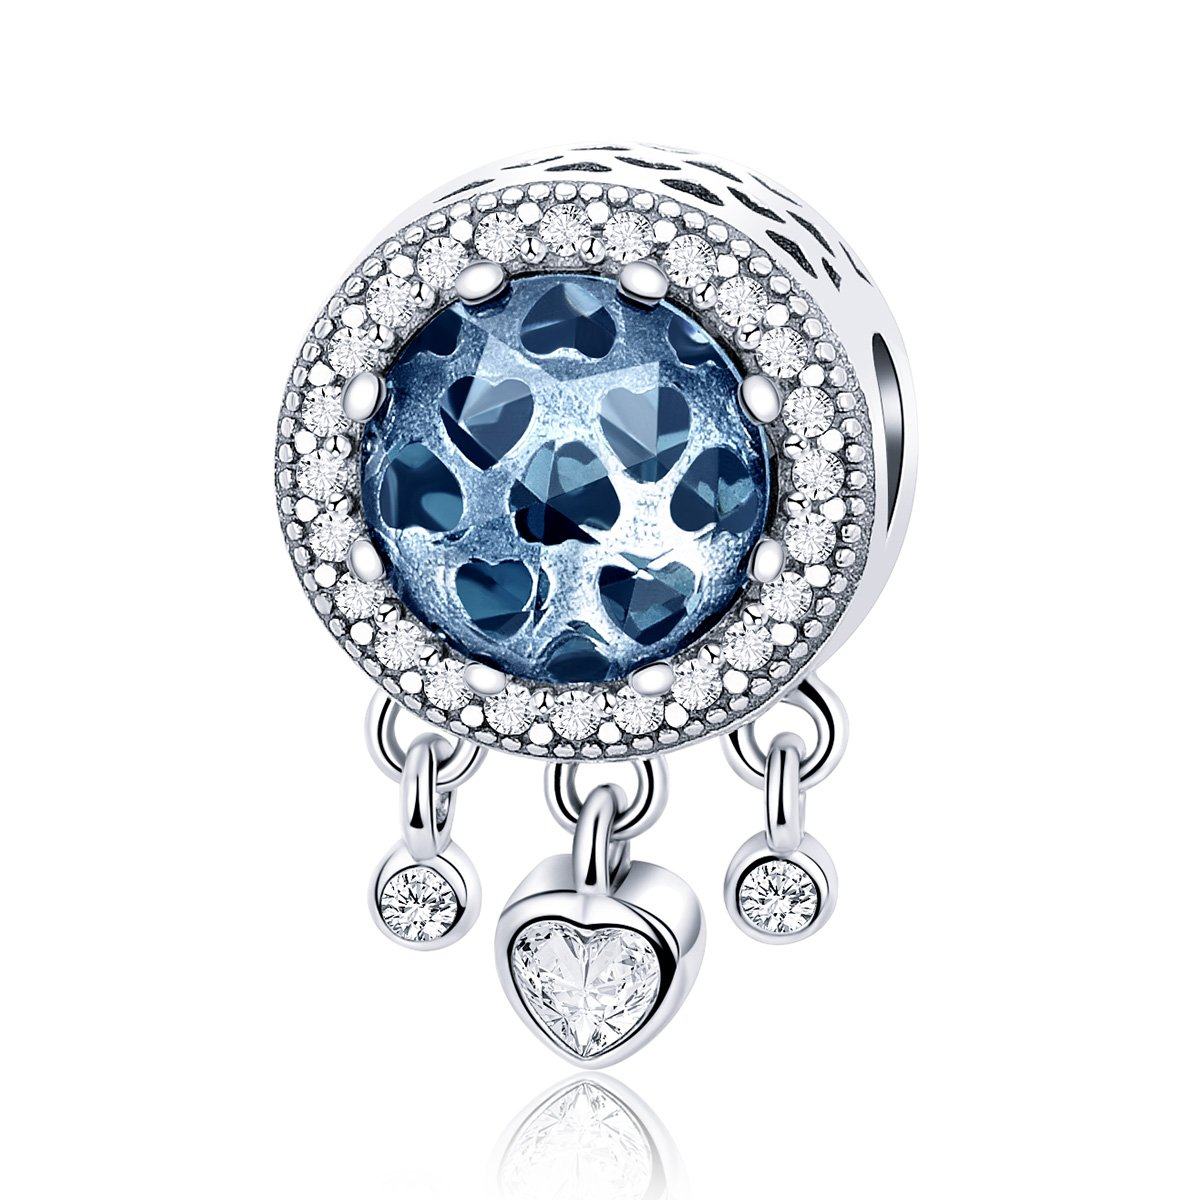 Forever Queen Dream Catcher Charm Genuine 925 Sterling Silver Dangle Heart Radiant CZ Crystal Bead fit Original Pandora Charm Bracelet and Necklace BJ09085